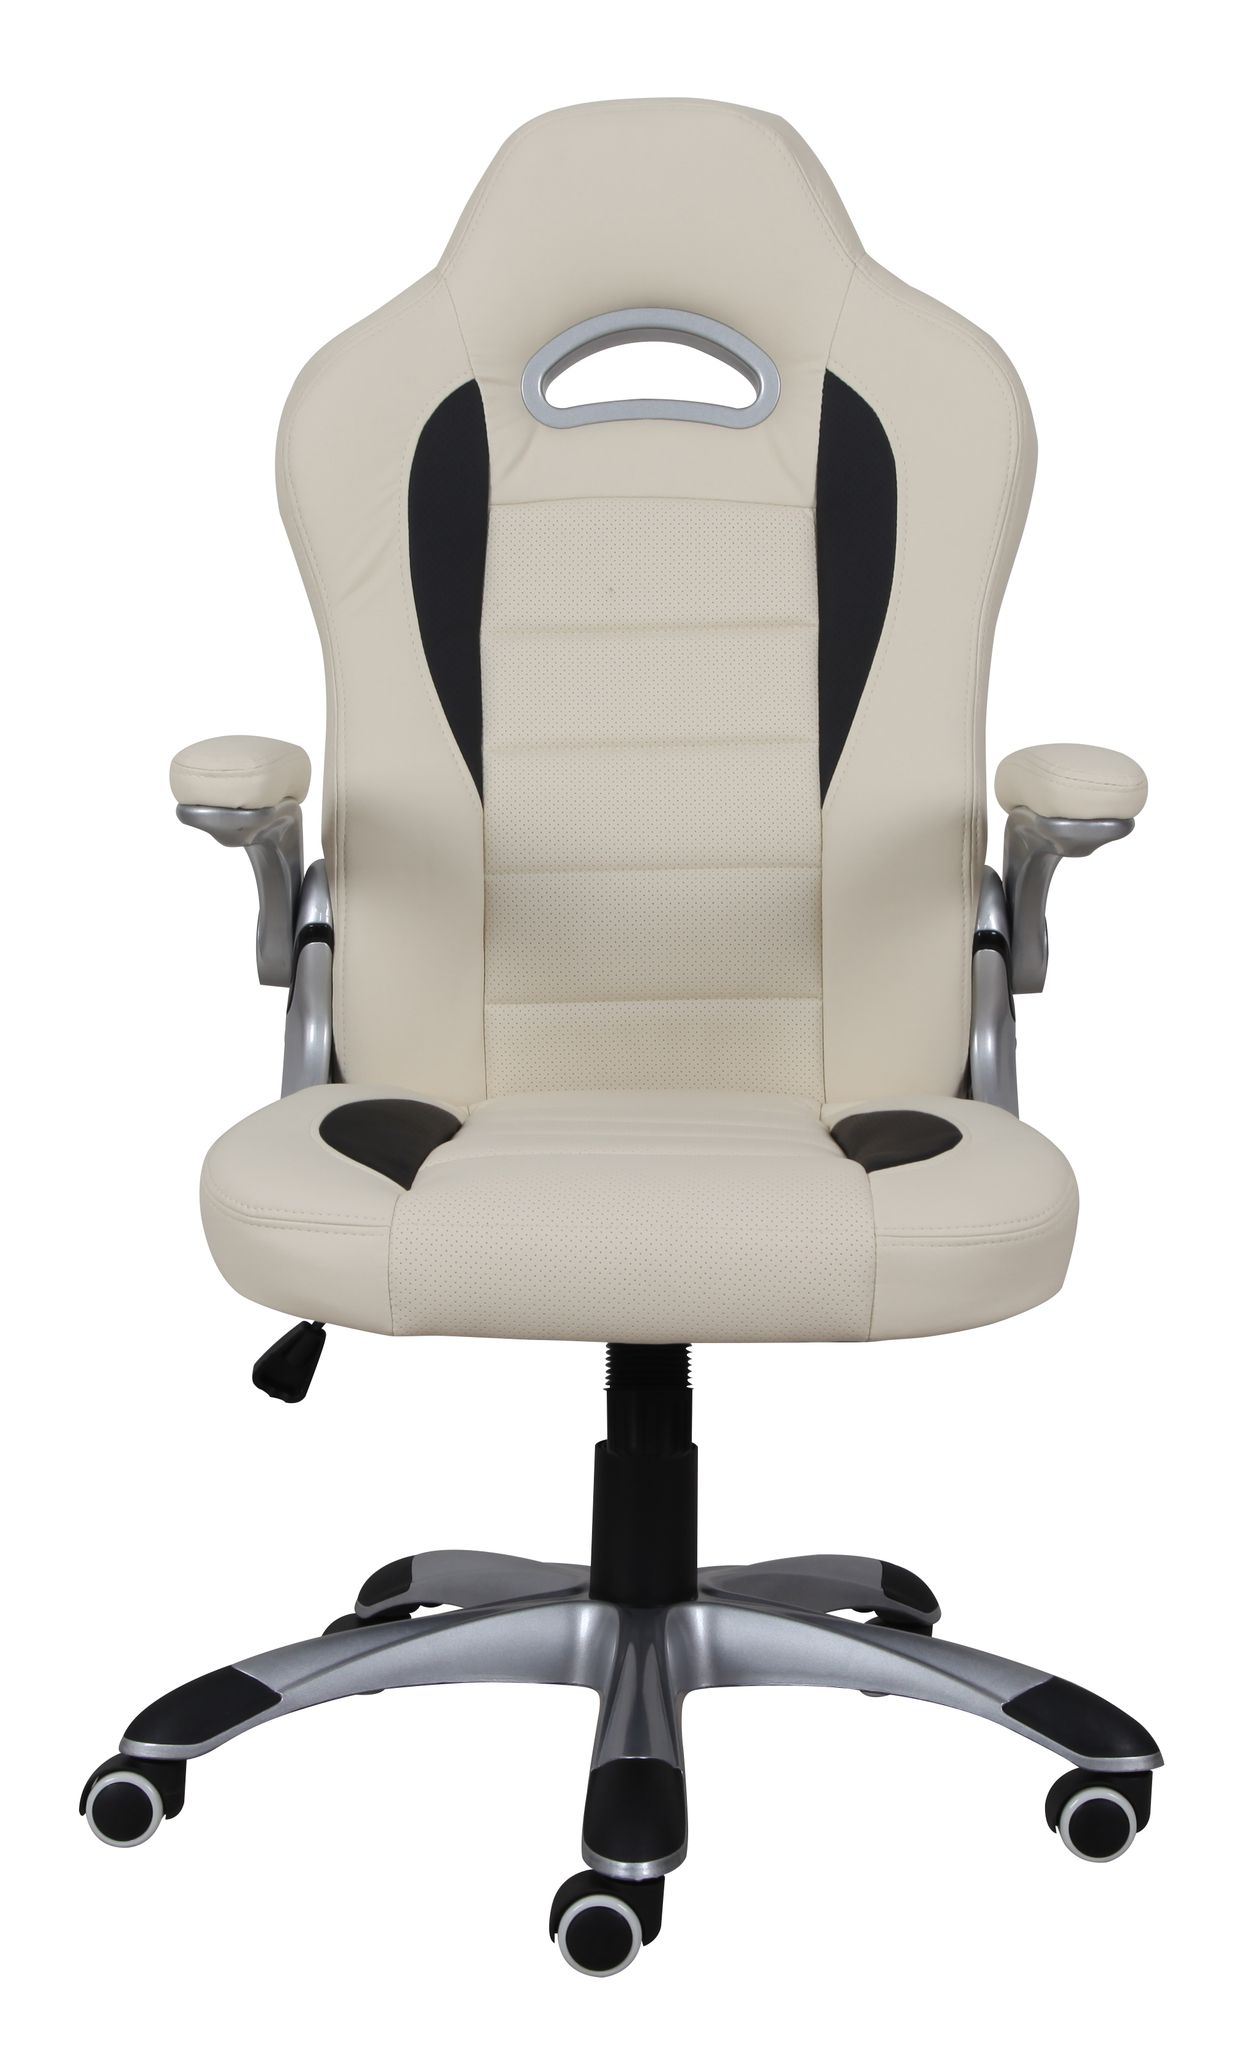 OFFICE CHAIR - BEIGE